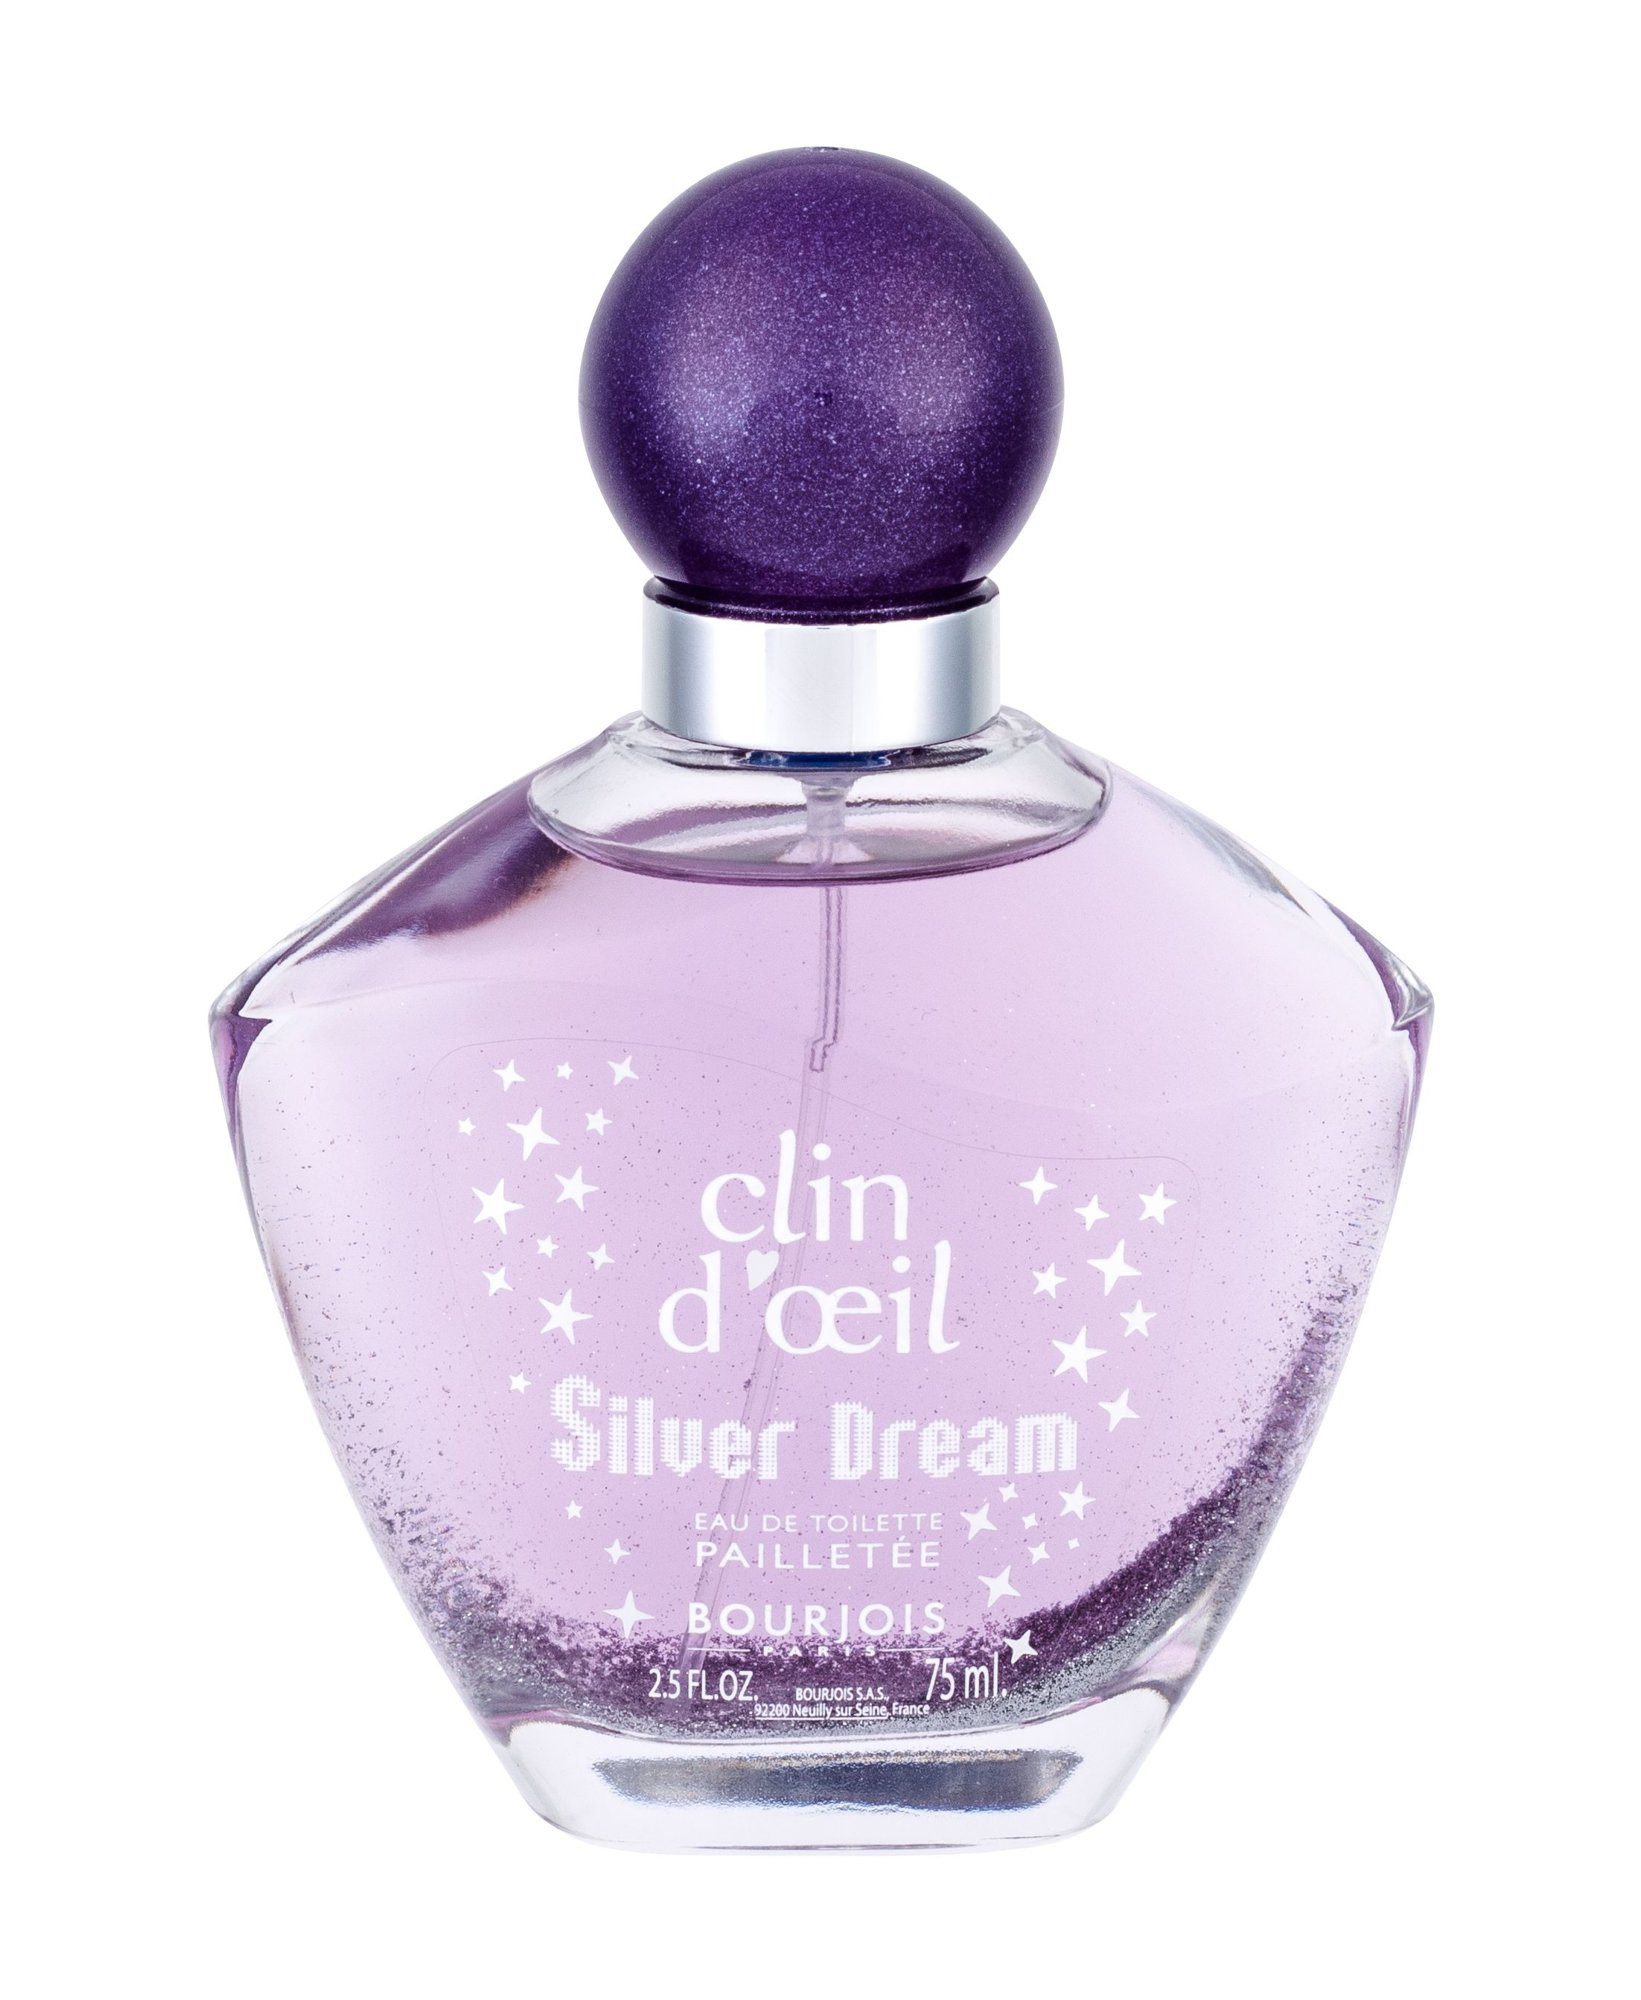 BOURJOIS Paris Clin d´Oeil Silver Dream EDT 75ml